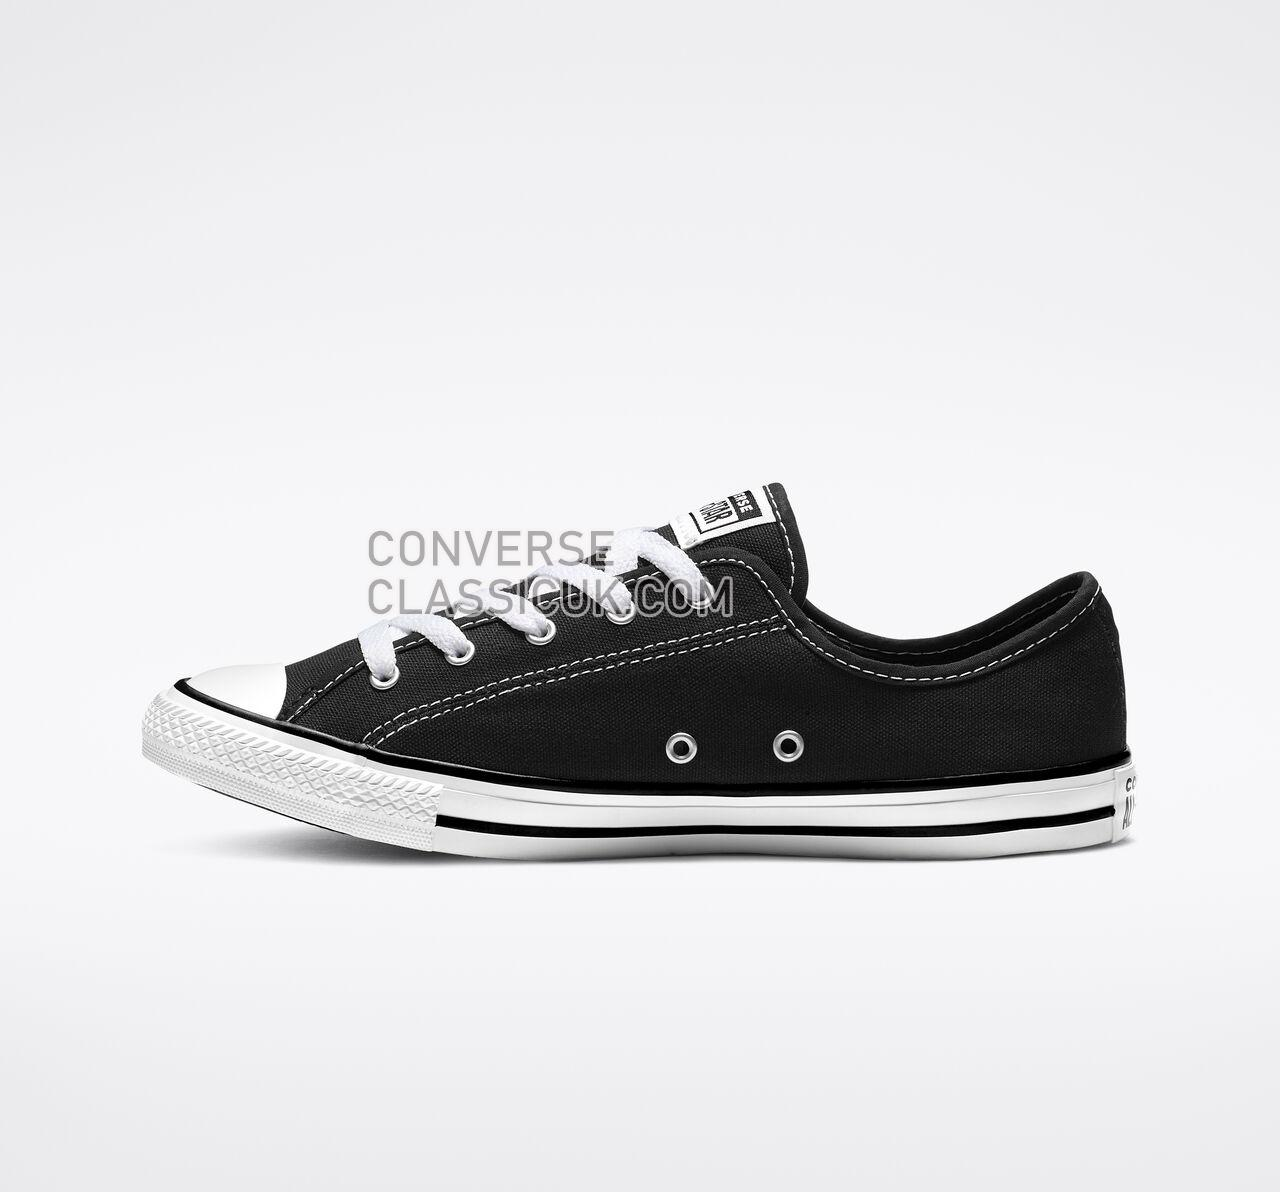 Converse Chuck Taylor All Star Dainty Low Top Womens 564982F Black/White/Black Shoes